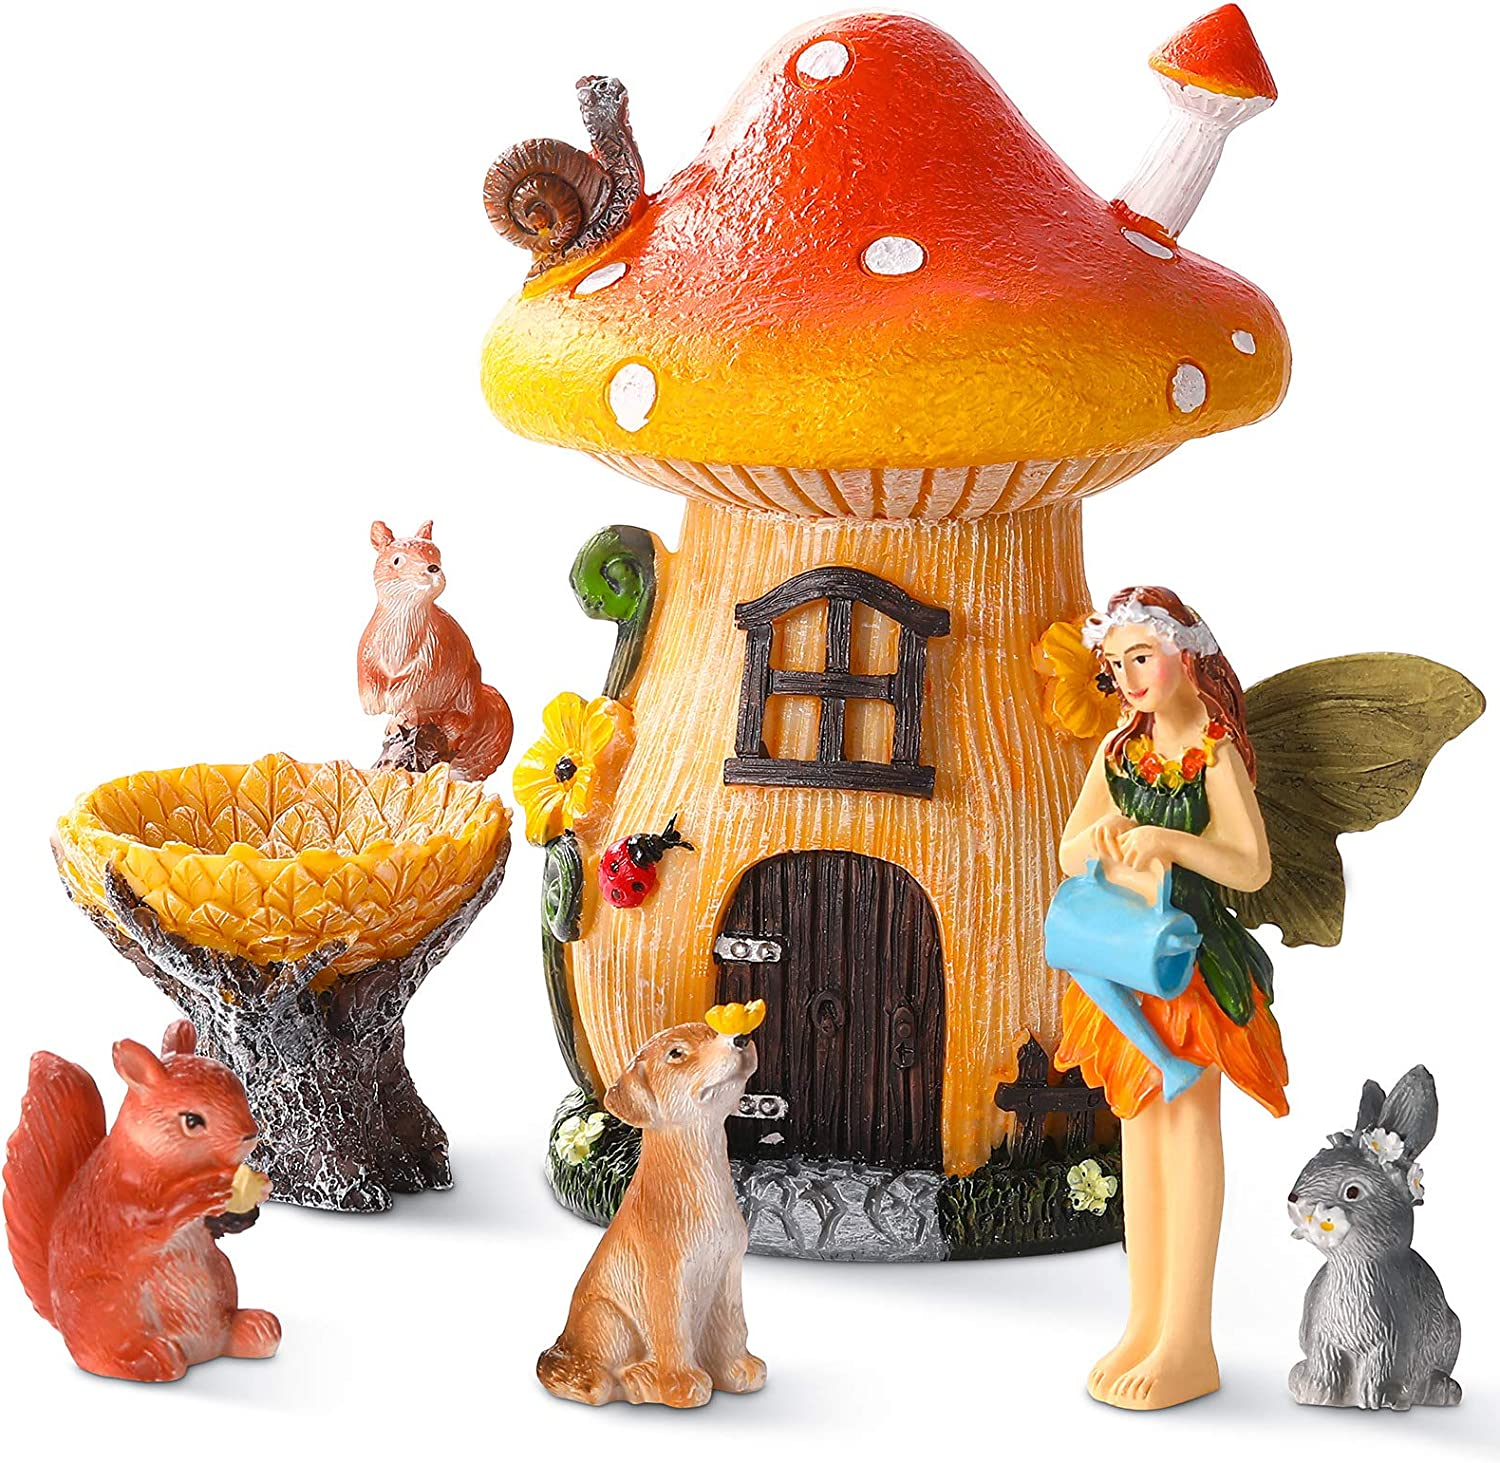 6 Pieces Garden Ornaments Accessories Kit Hand Painted Miniature Ornament Mushroom House Fairy Rabbit Dog Decorations for Yard Lawn Indoor Outdoor Decor and Ornaments